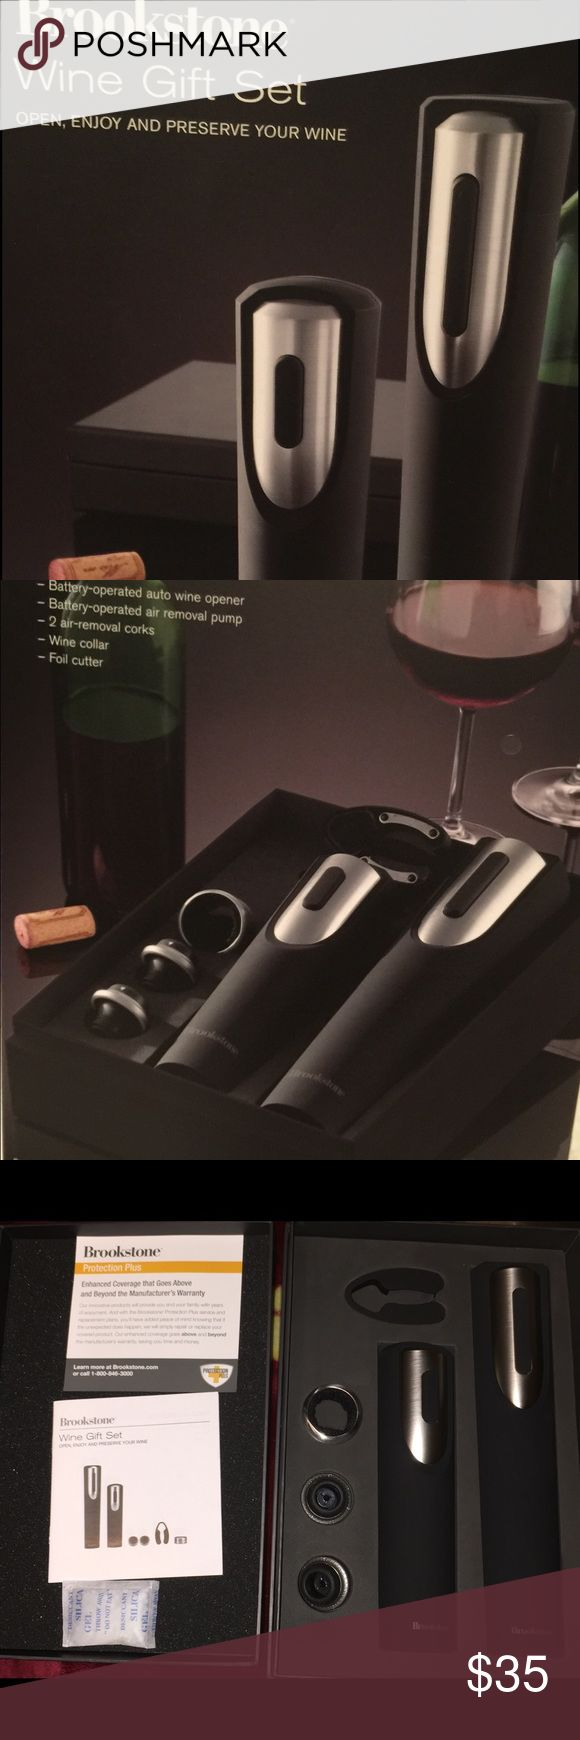 Brookstone Wine Opener and Preserver Gift Set Wine gift set includes everything your favorite wine needs, the automatic opener removes cork with a press of a button, if at the end of your dinner or gathering if theres any wine left in the bottle, use the wine preserver to remove air and reseal the bottle to prevent oxidation. Brookstone Other